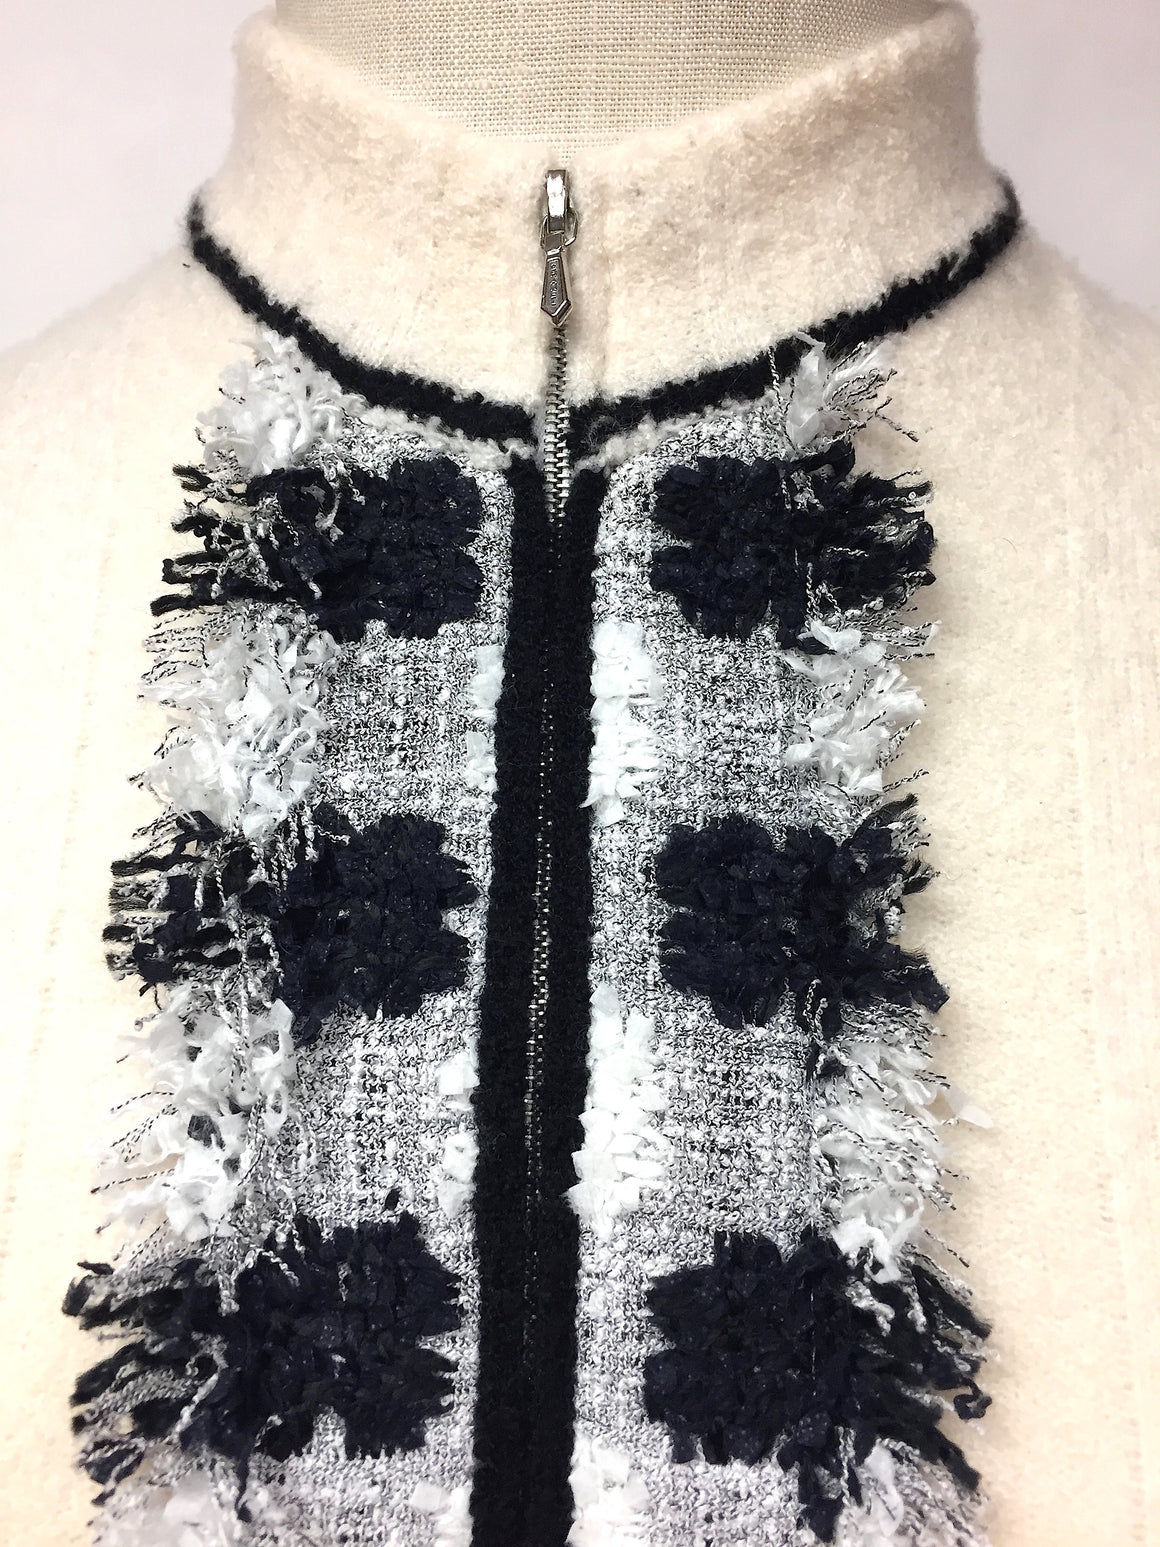 bisbiz.com CHANEL Vintage Ivory Cashmere Blend Black/Gray Frayed Trim Zip-Front Cardigan Sweater Size: FR 38 / US6 - Bis Luxury Resale